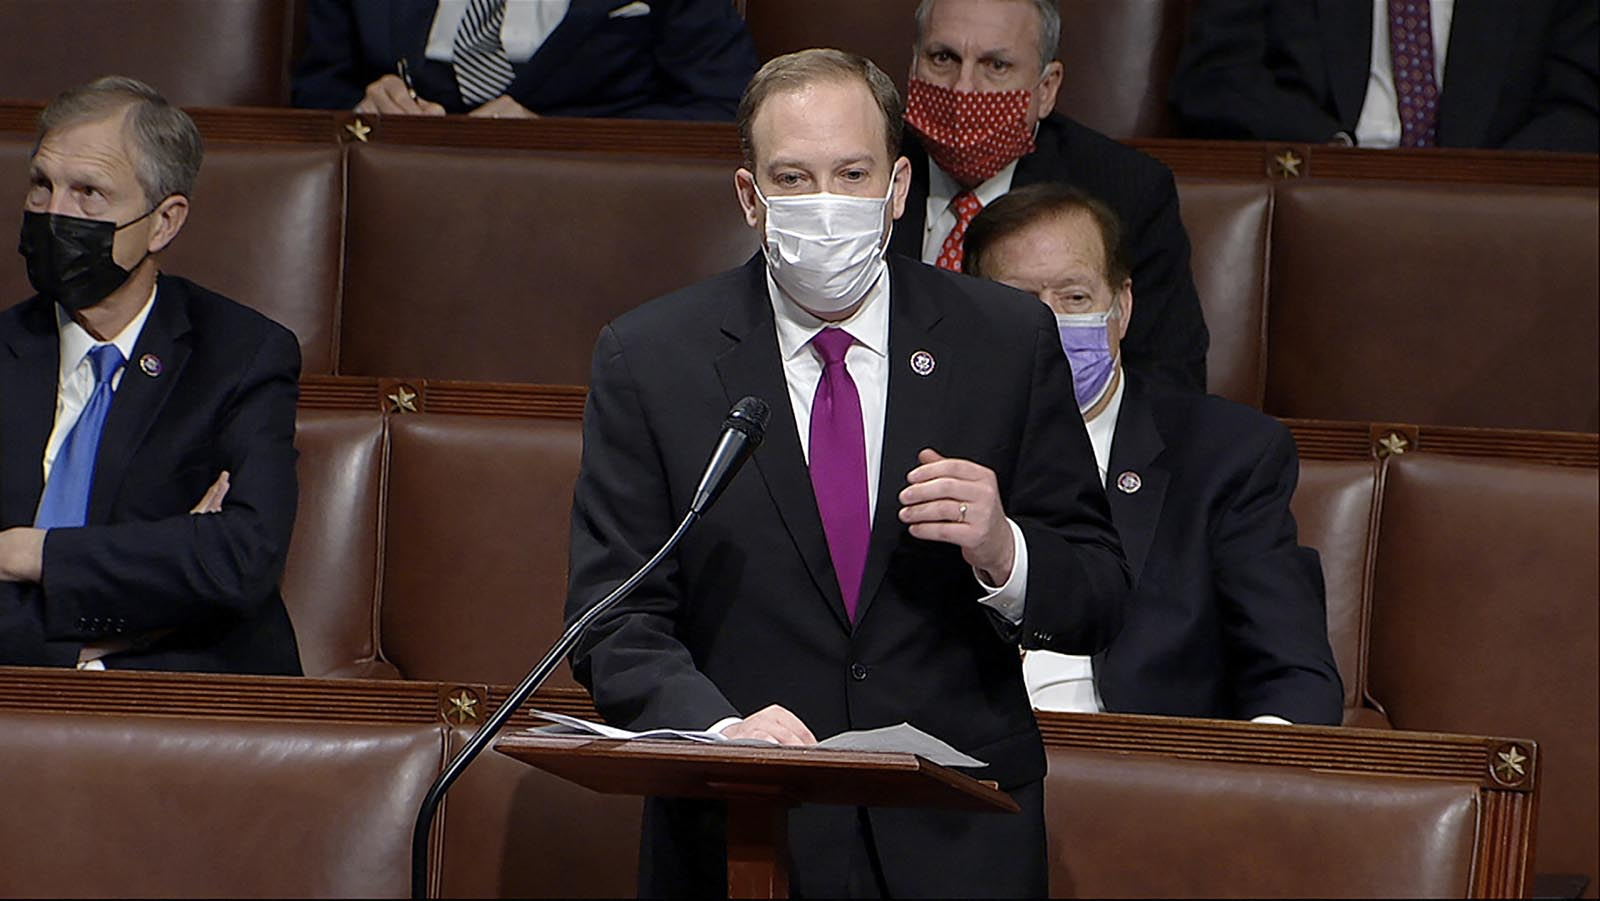 In this image from video, Rep. Lee Zeldin speaks as the House reconvenes to debate the objection to confirm the Electoral College vote from Arizona, after protesters stormed into the U.S. Capitol on Wednesday, January 6.